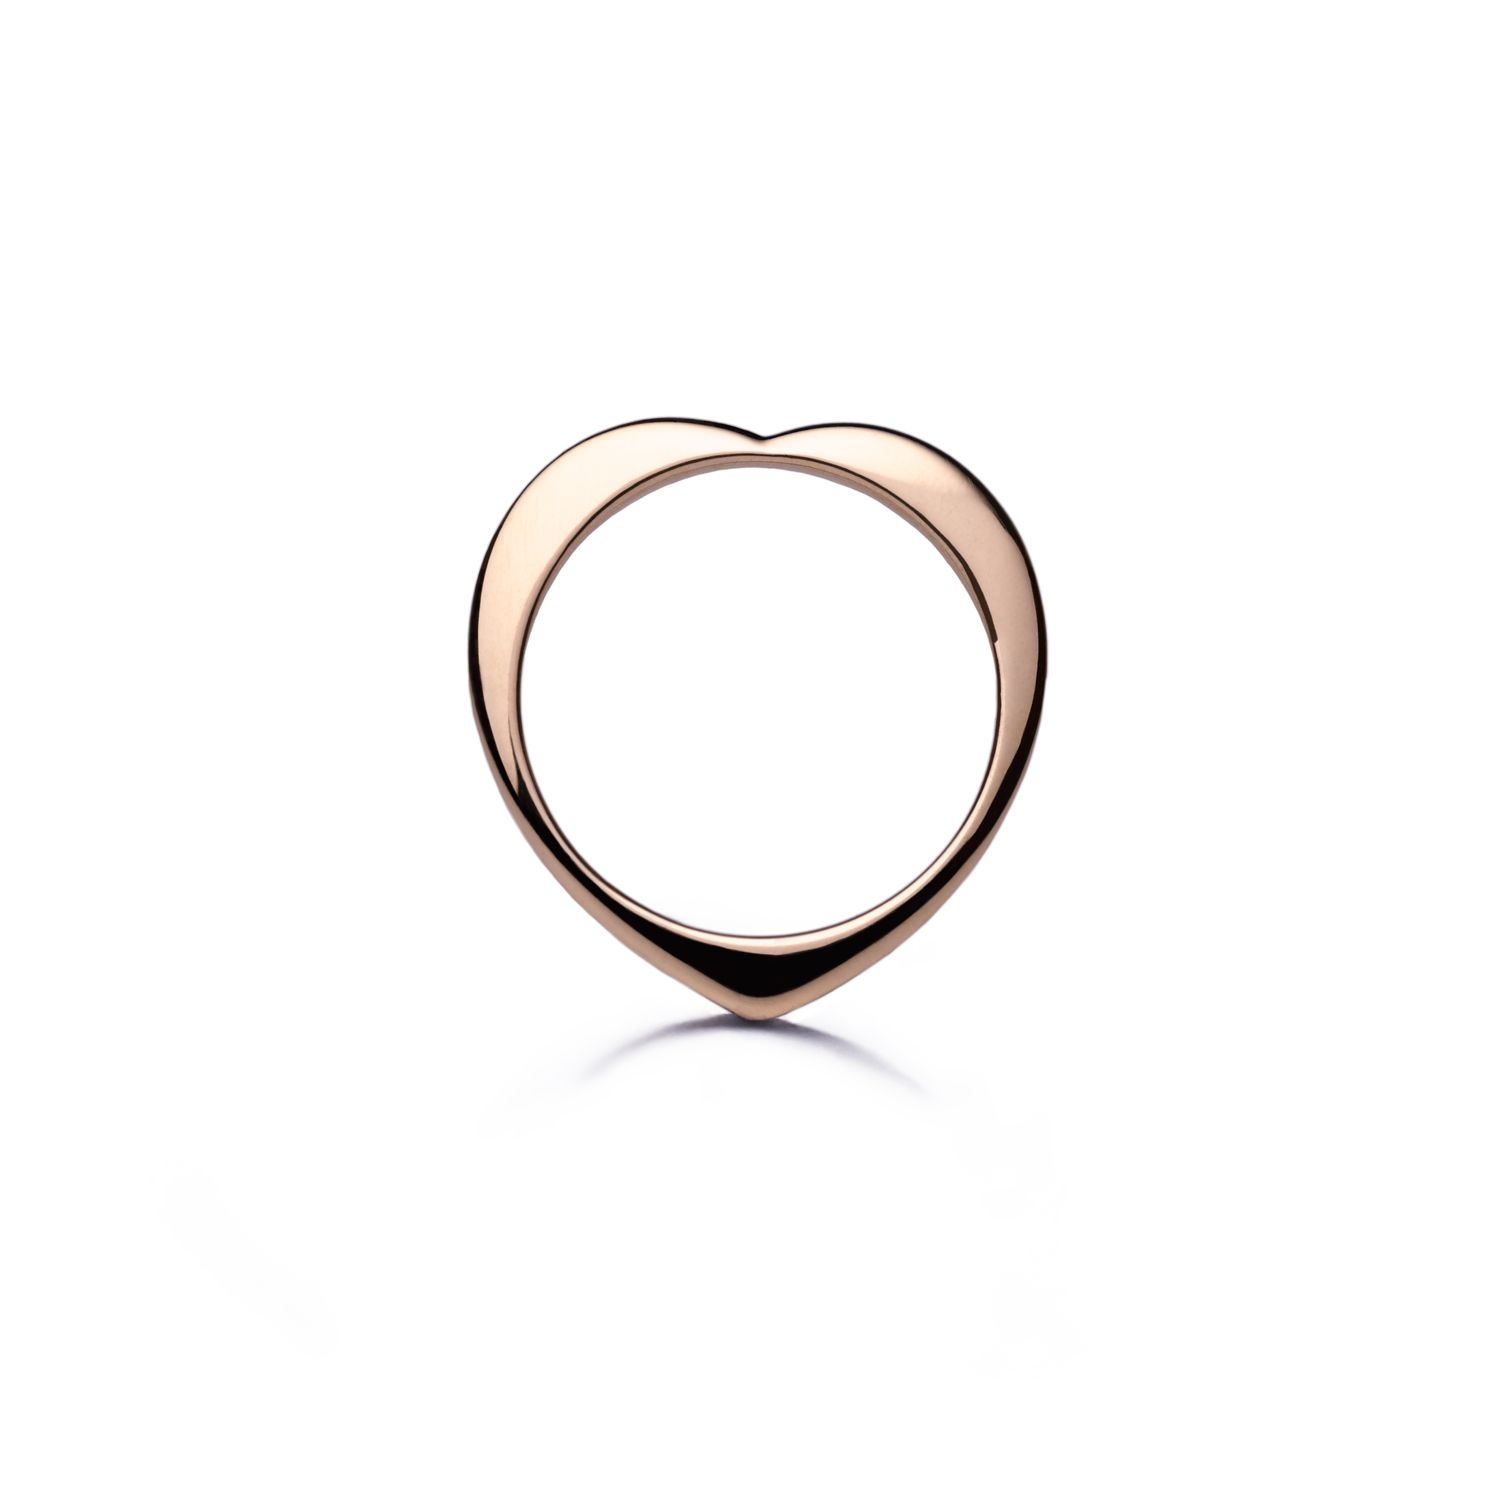 Nora Kogan  Heart Ring in 14k rose gold